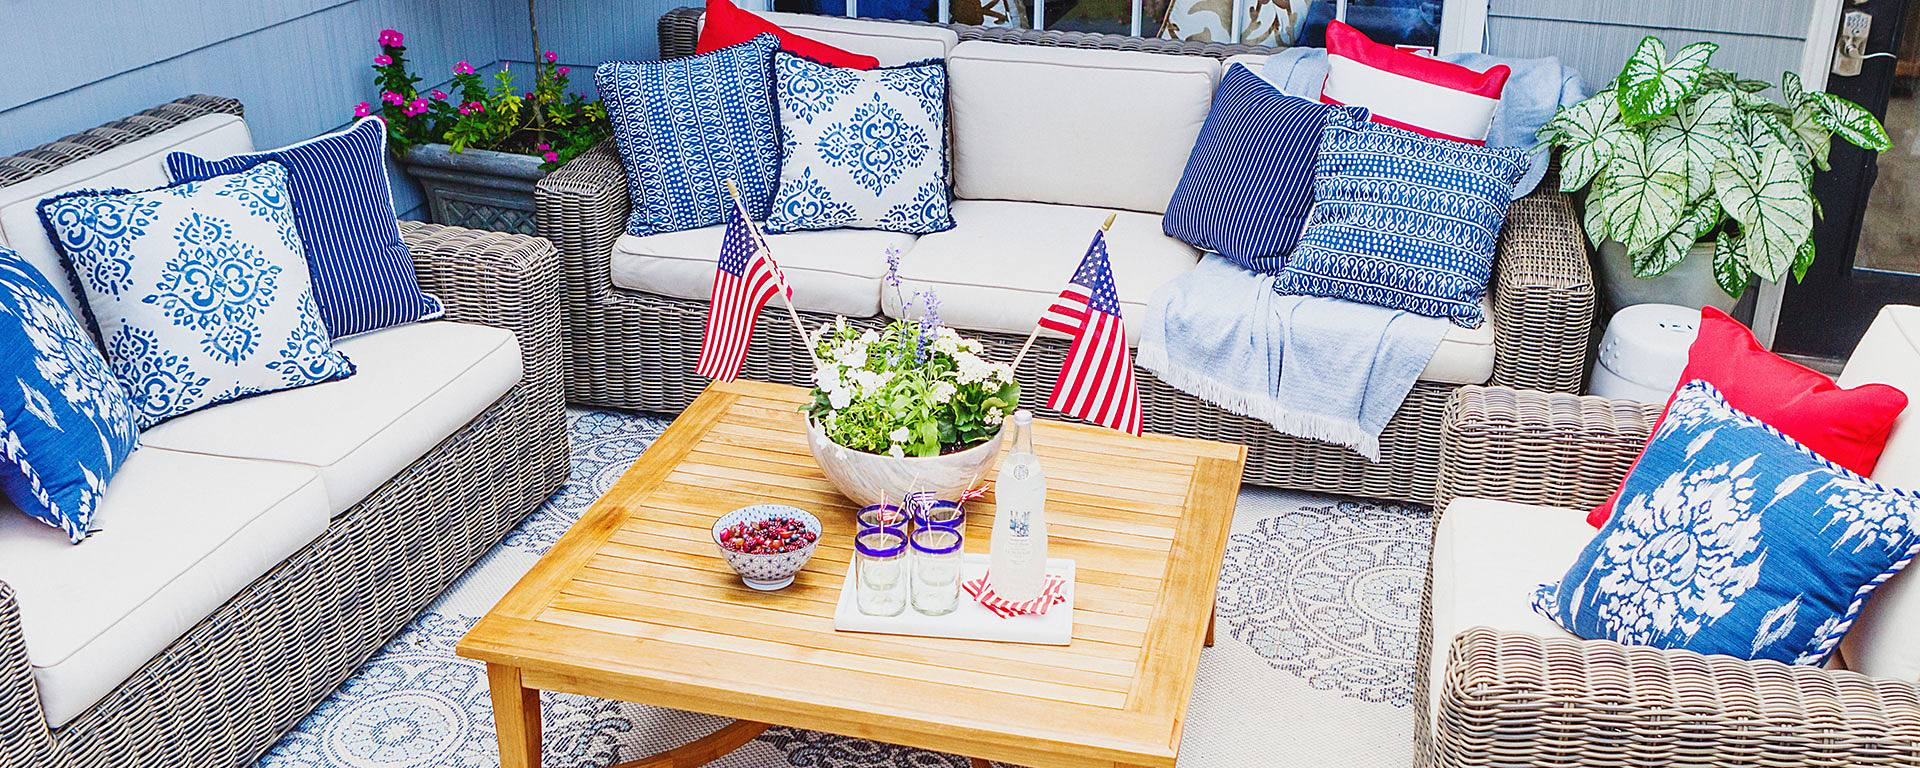 5-Minute Makeover: The Fourth of July Edition with House of Harper